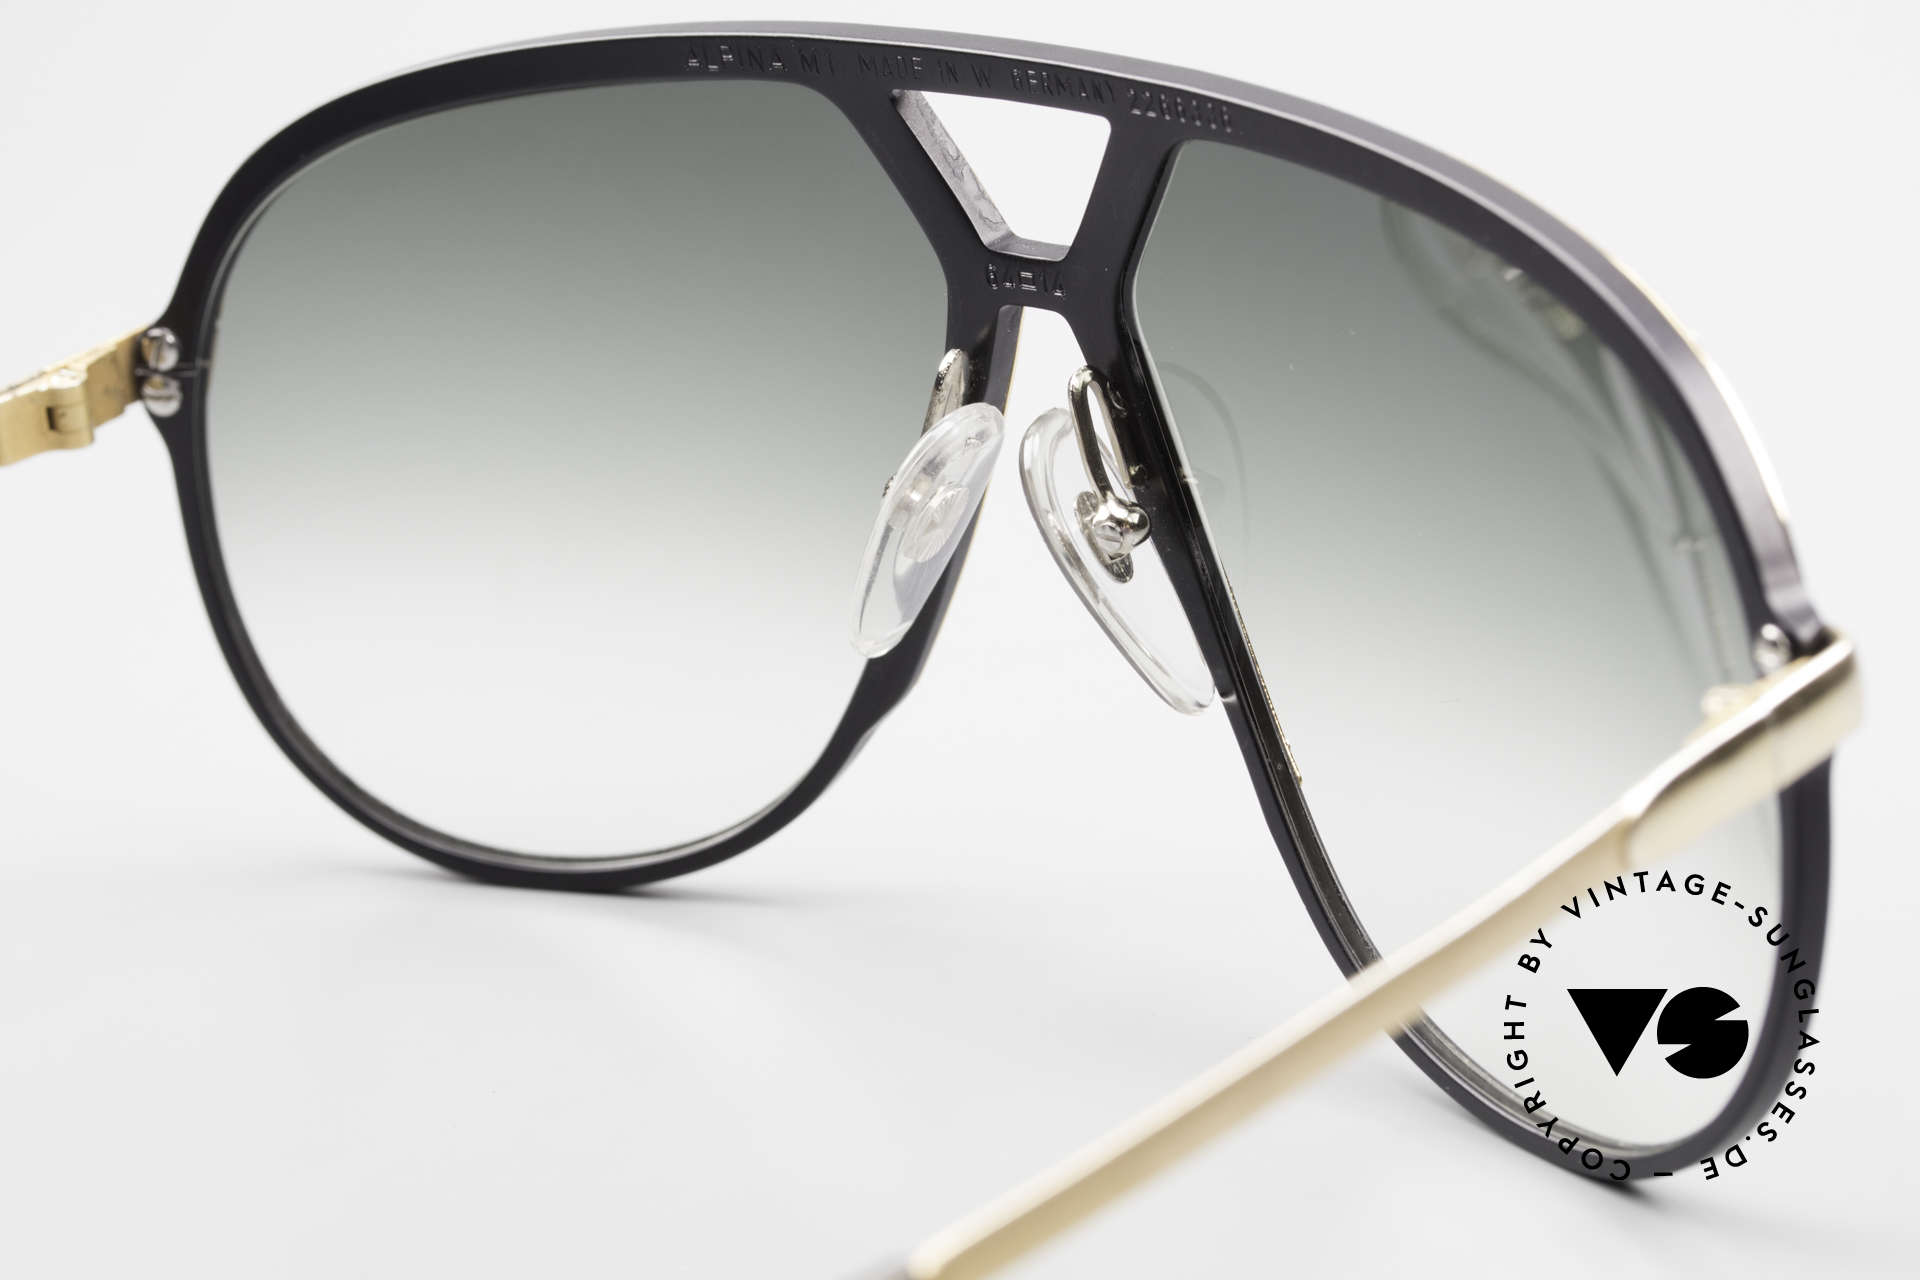 Alpina M1 80's Sunglasses West Germany, NO RETRO SHADES, but the old legend from 1986, Made for Men